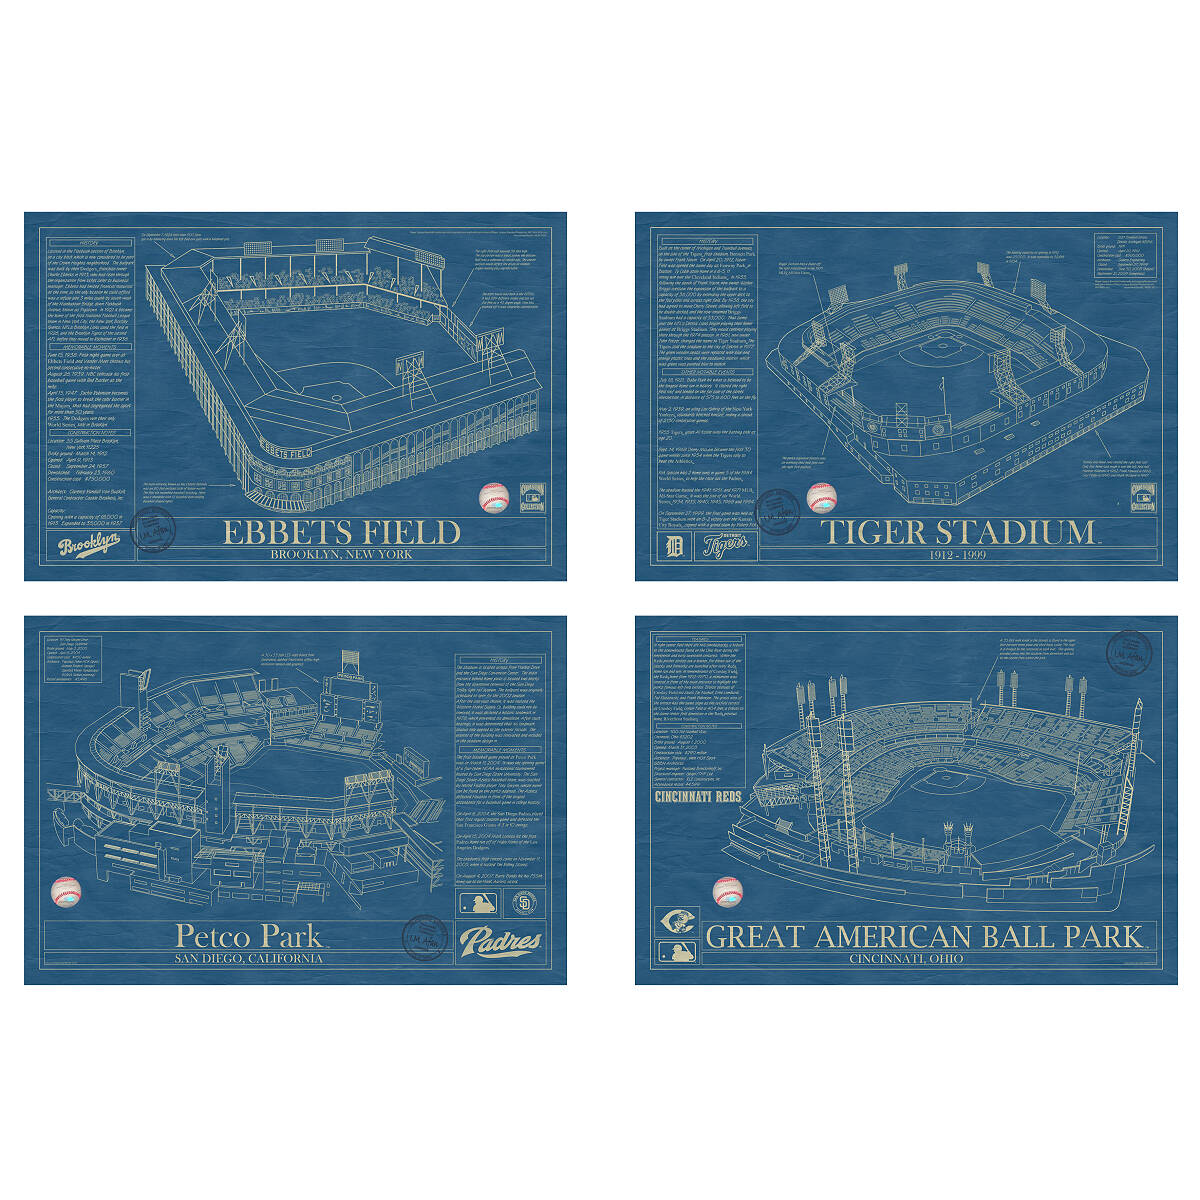 Baseball stadium blueprints baseball stadium art fenway park baseball stadium blueprints 5 thumbnail malvernweather Image collections